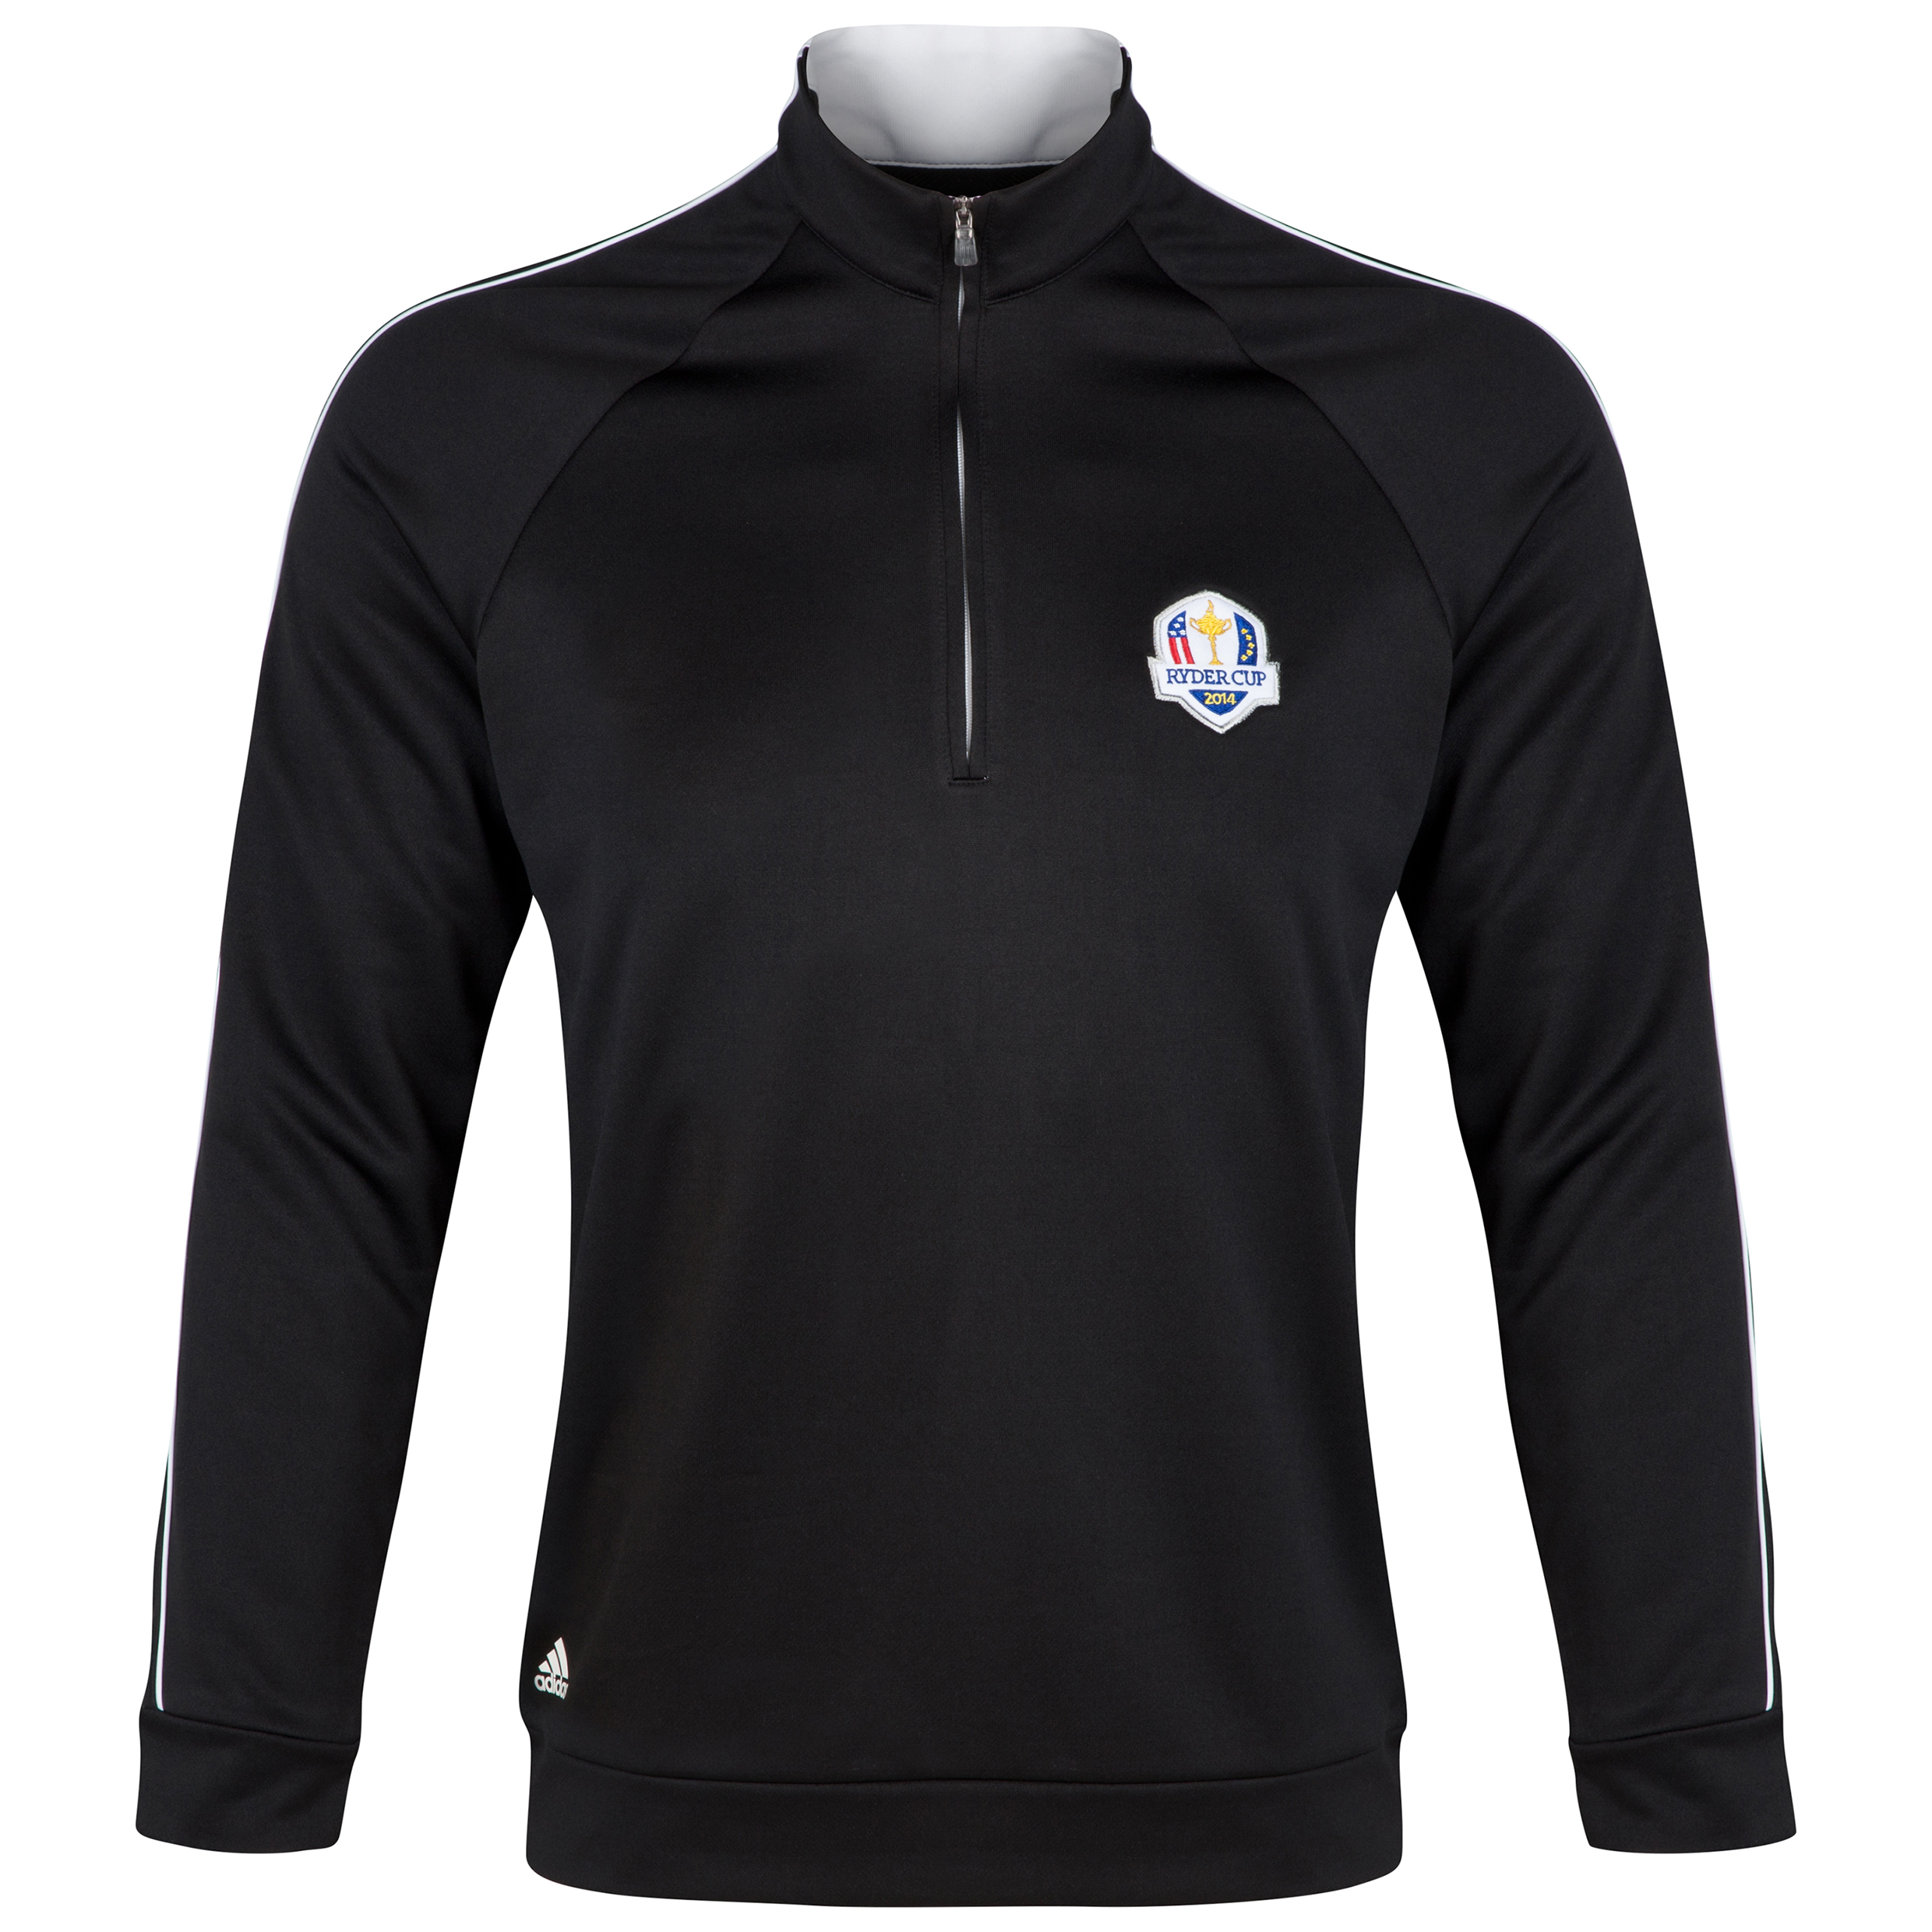 The 2014 Ryder Cup adidas ClimaLite 1/4 Zip Contrast Layering Piece Black